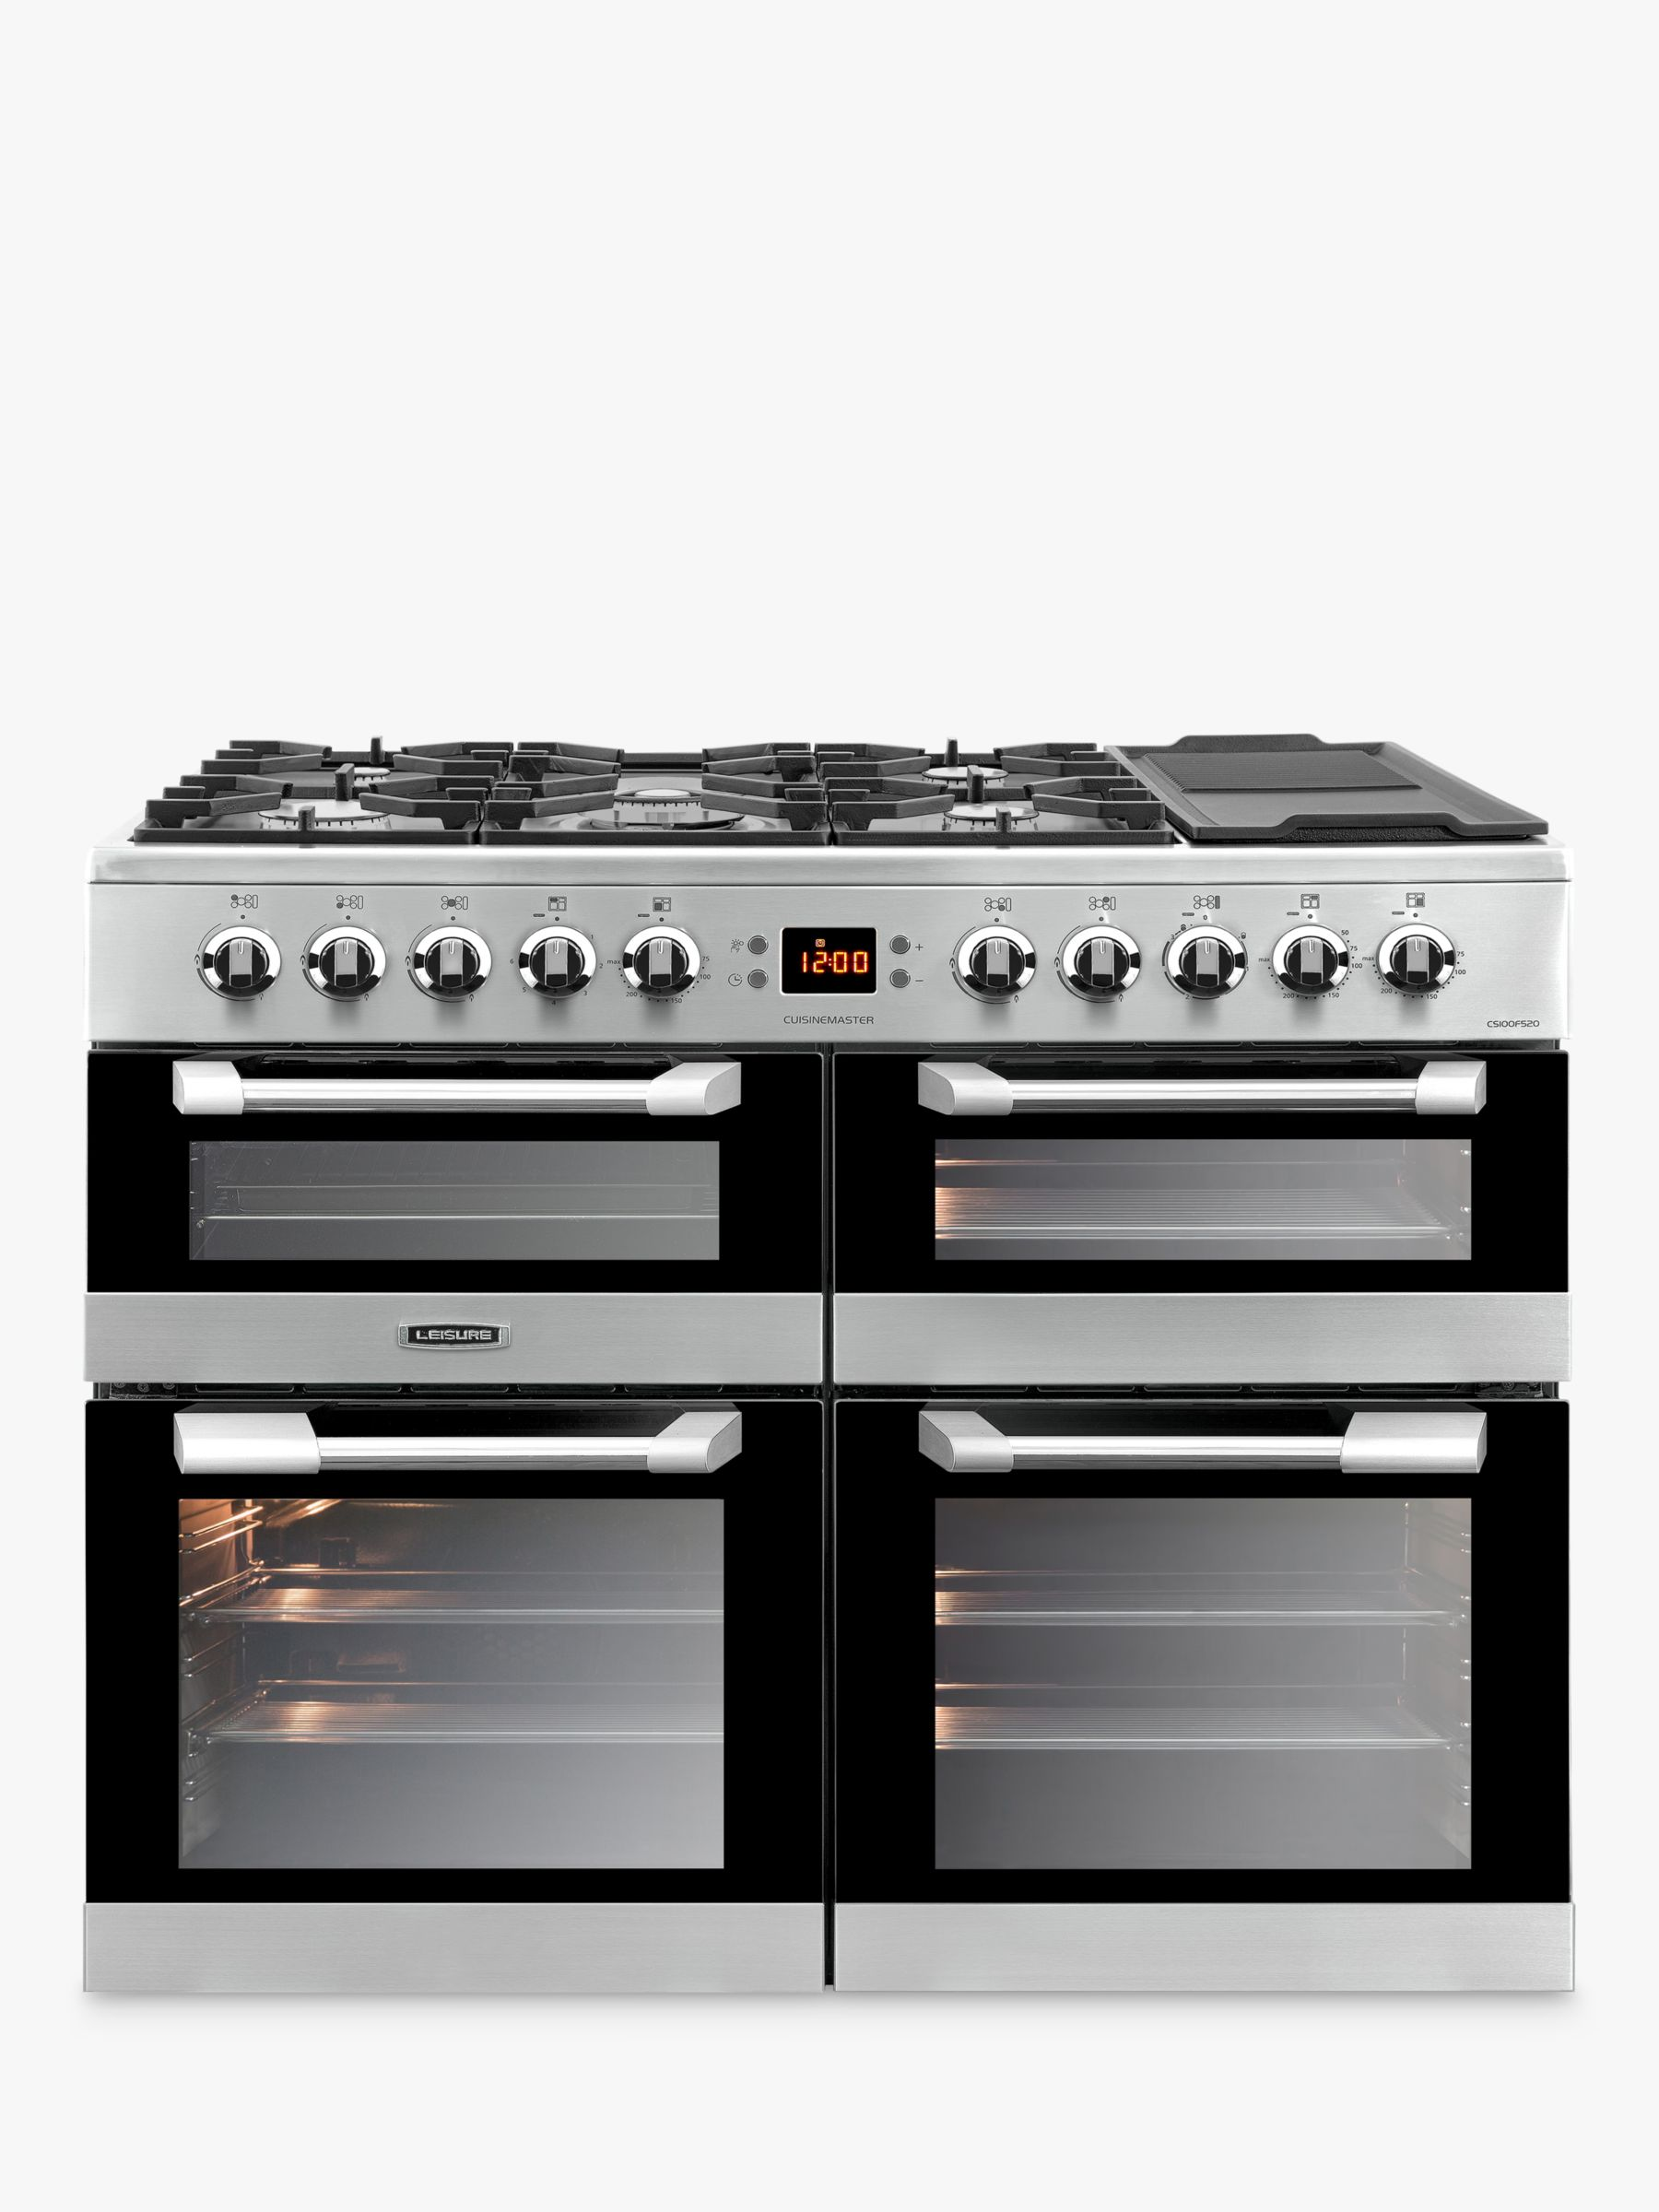 Leisure Leisure CS100F520X Cuisinemaster Freestanding Dual Fuel Range Cooker, Stainless Steel